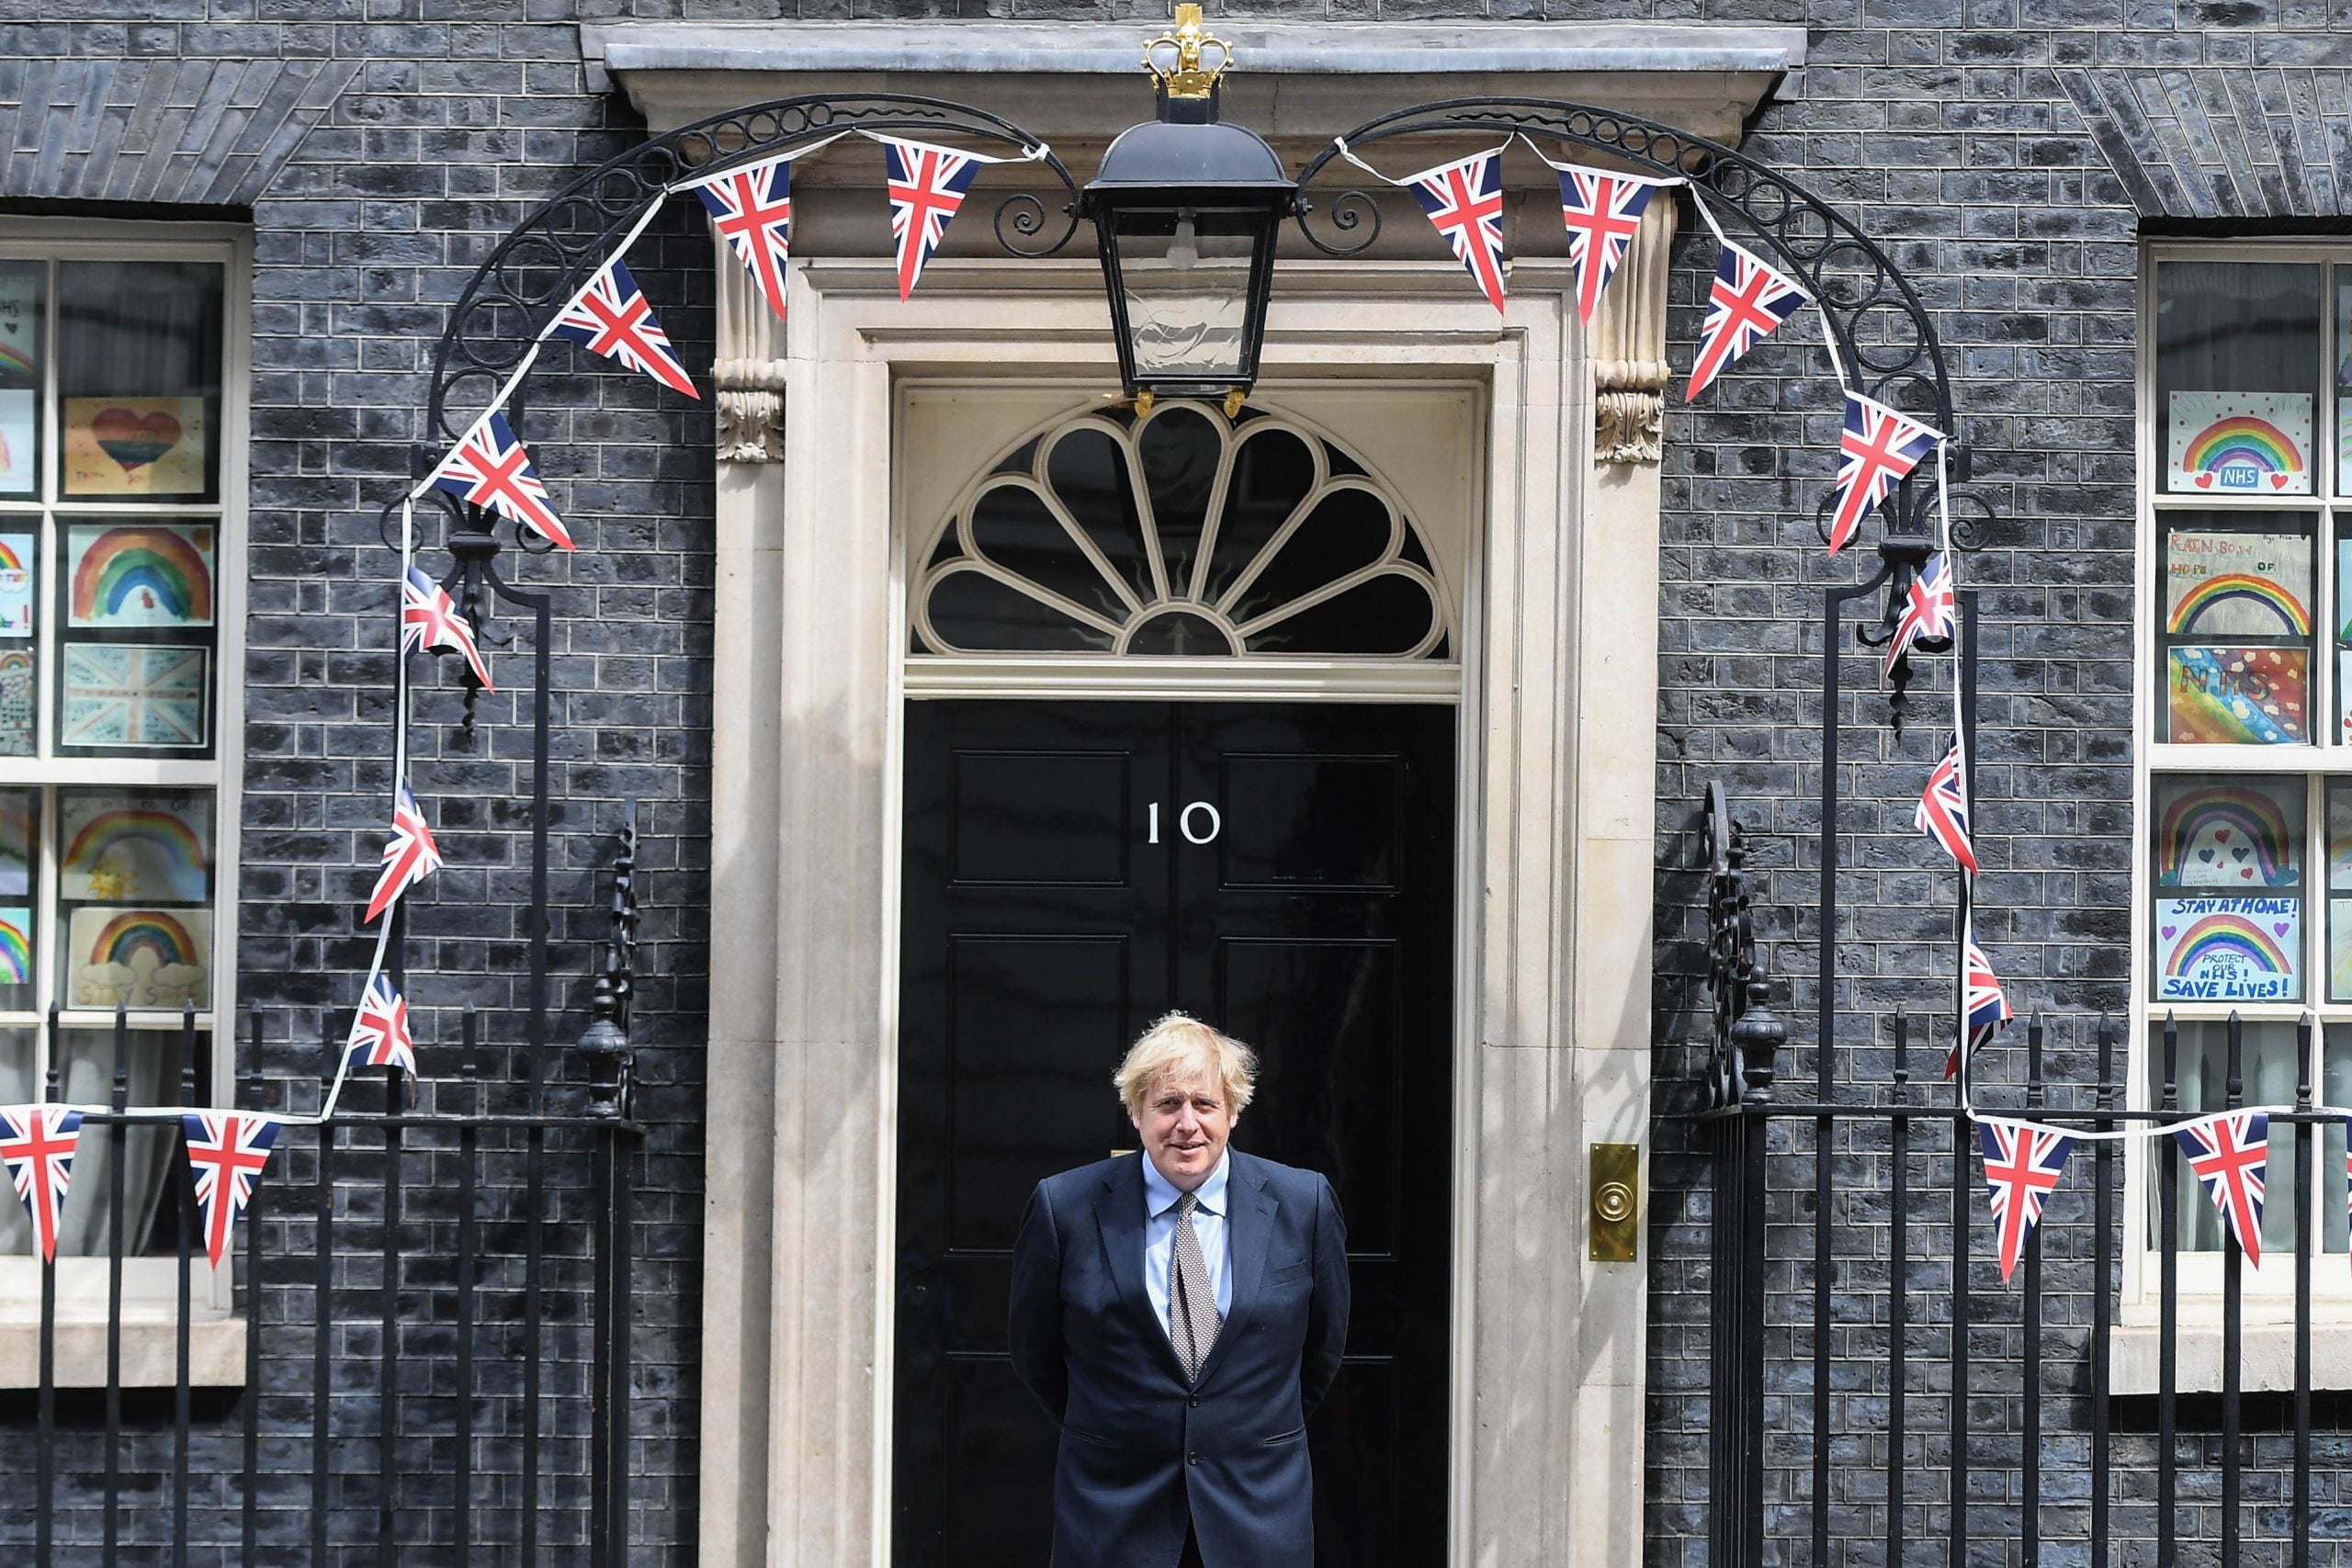 With a Red Tory vision for Britain, Boris Johnson and his new Conservatives will triumph